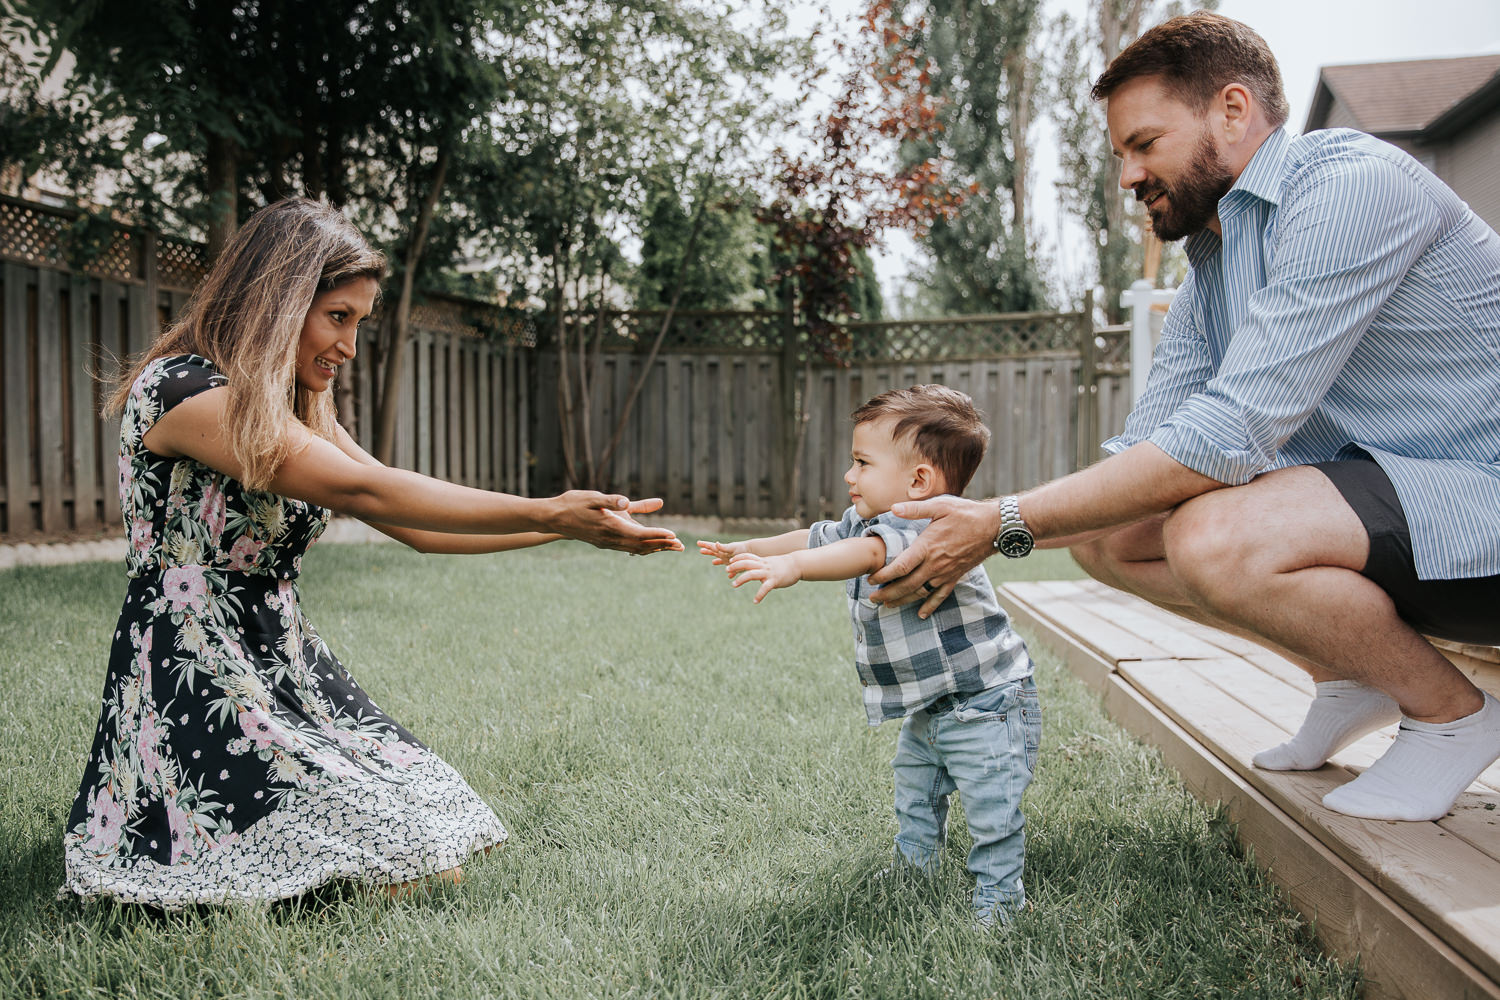 1 year old baby boy with dark hair in white and blue plaid shirt and jeans standing in backyard, supported by dad as mom and son reach out arms to one another, smiling -York Region Lifestyle Photos